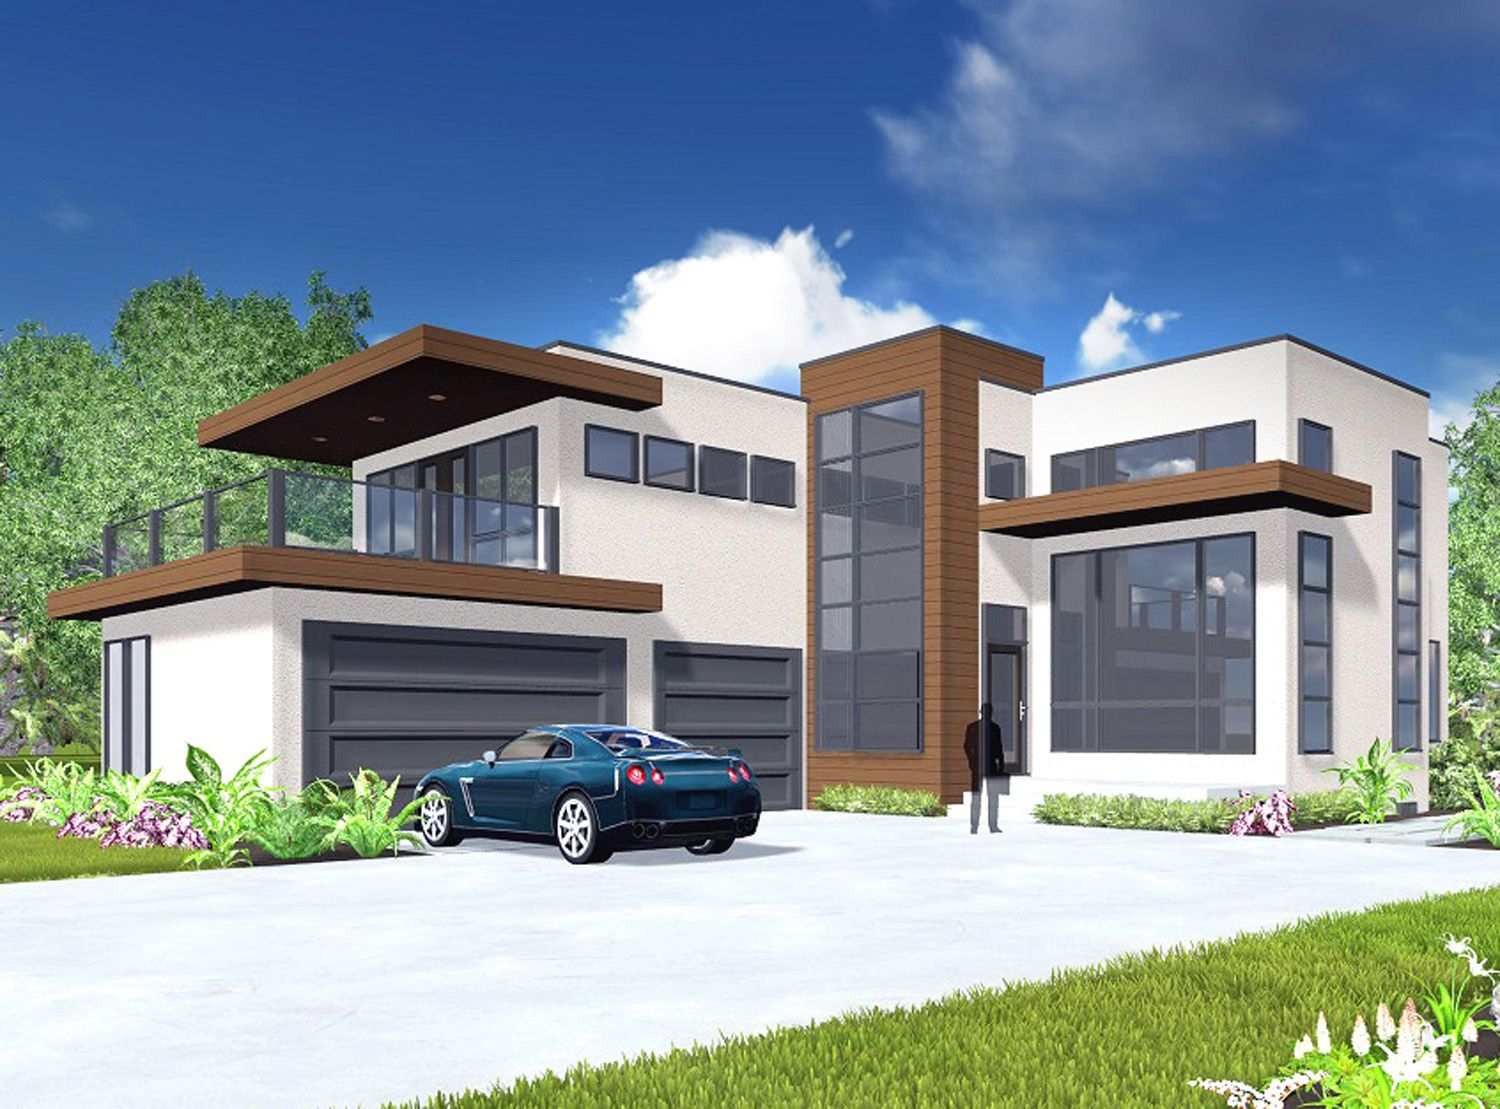 Plan 81647AB: Modern Living With Private Master Suite